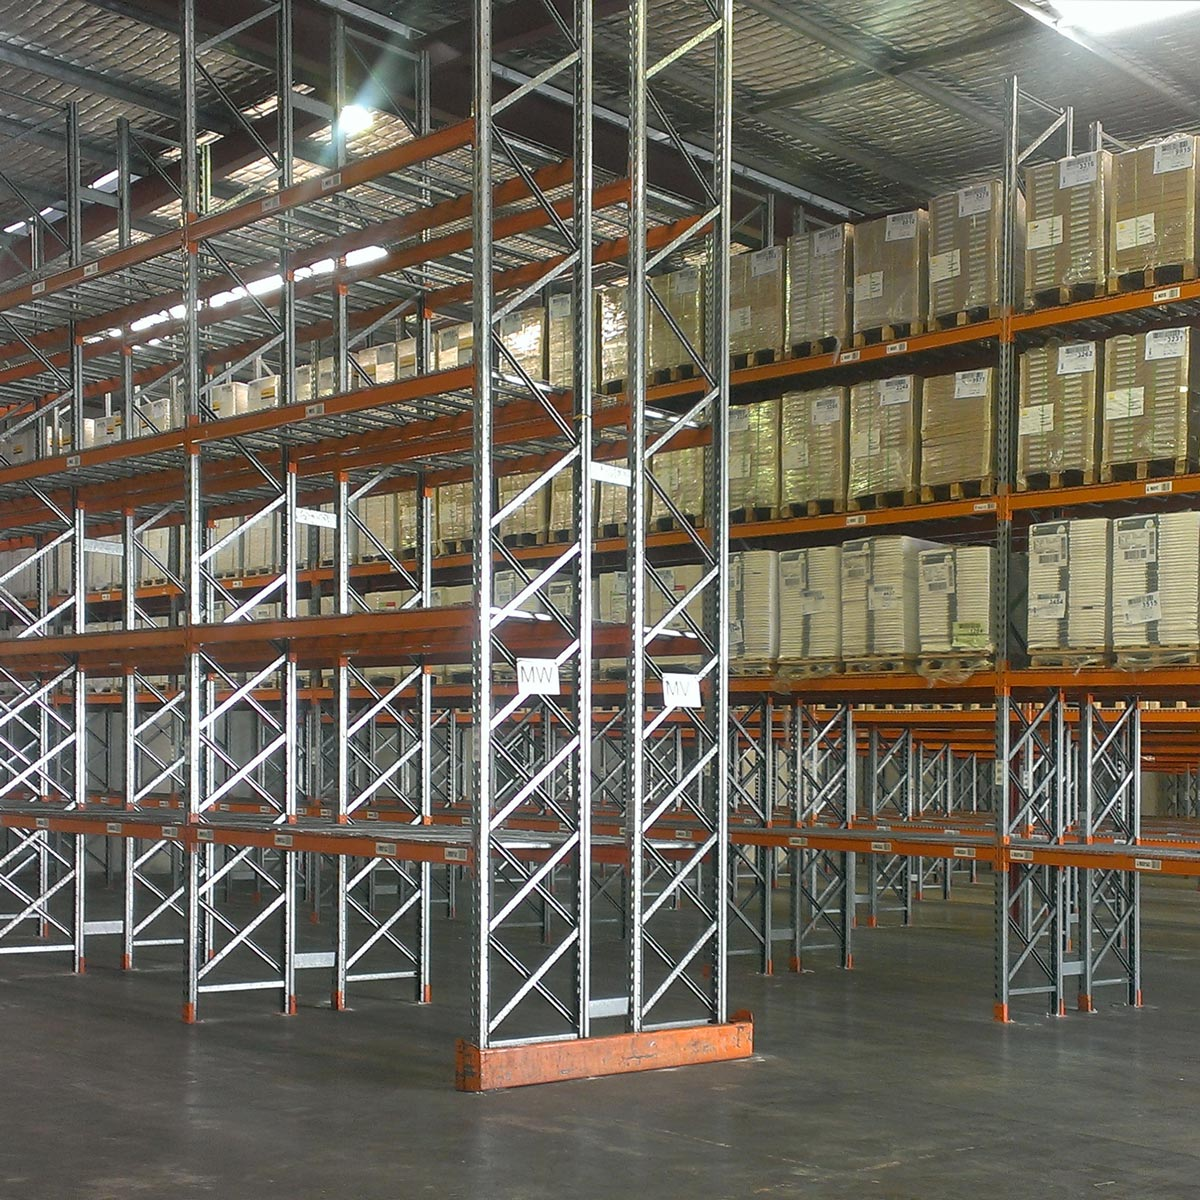 Second Hand Pallet Racking - Colby